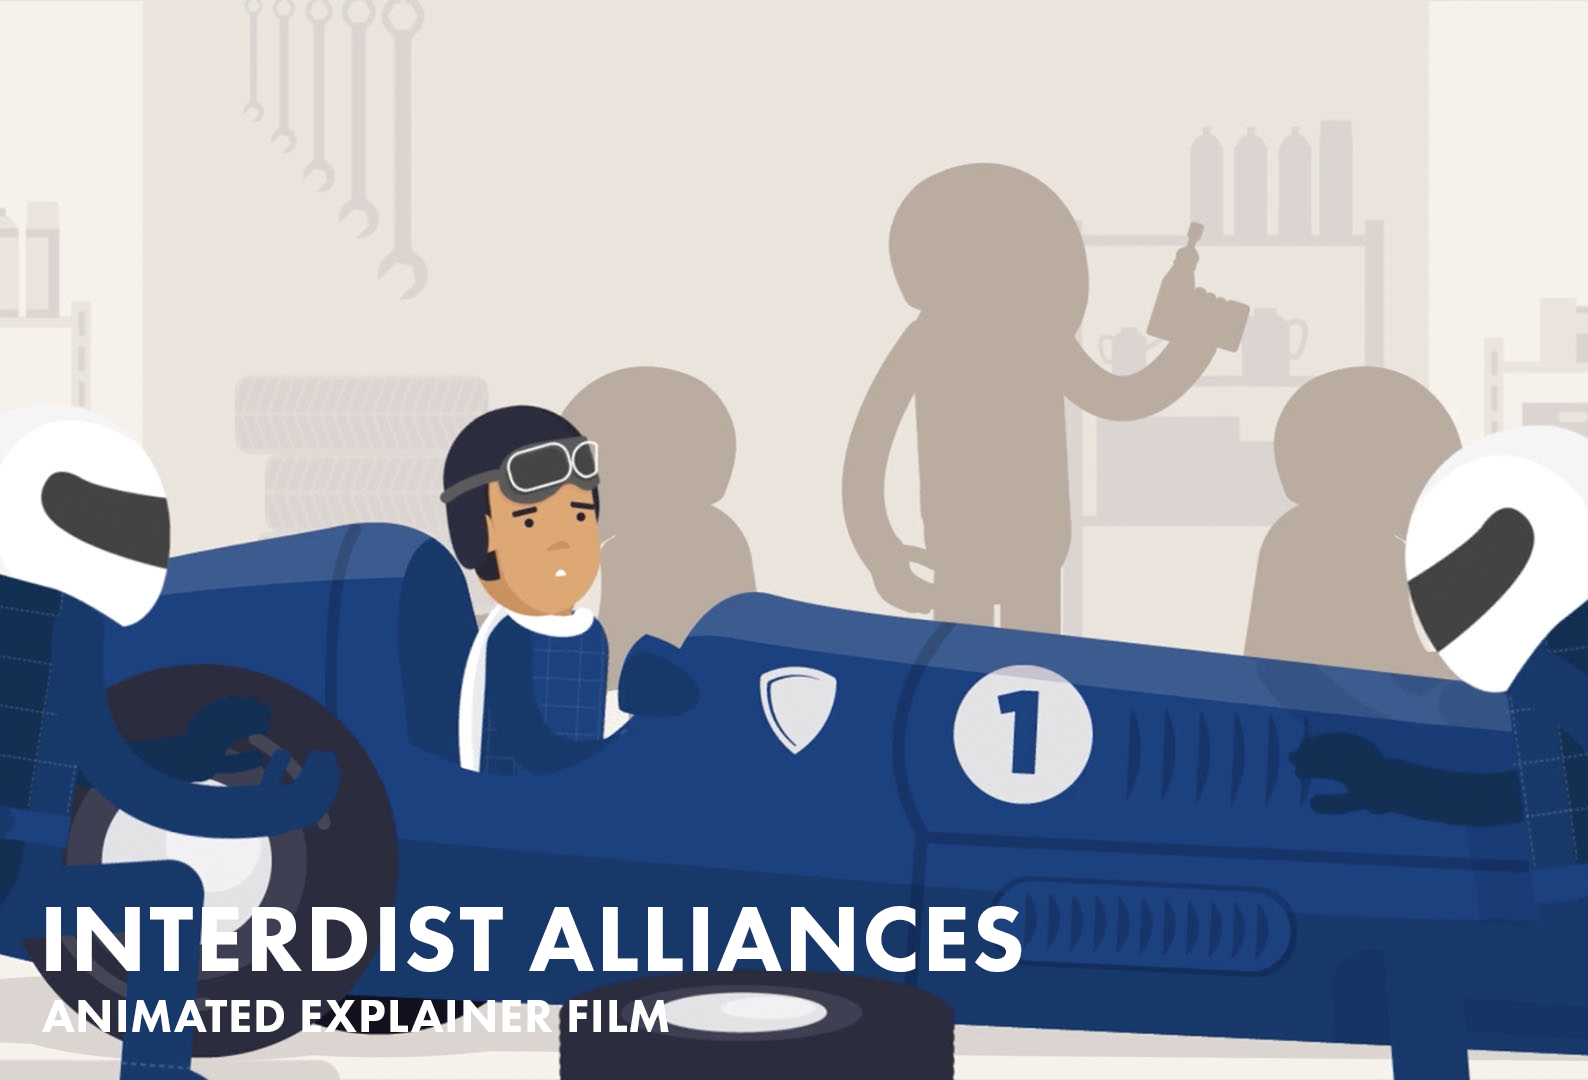 Interdist Alliances